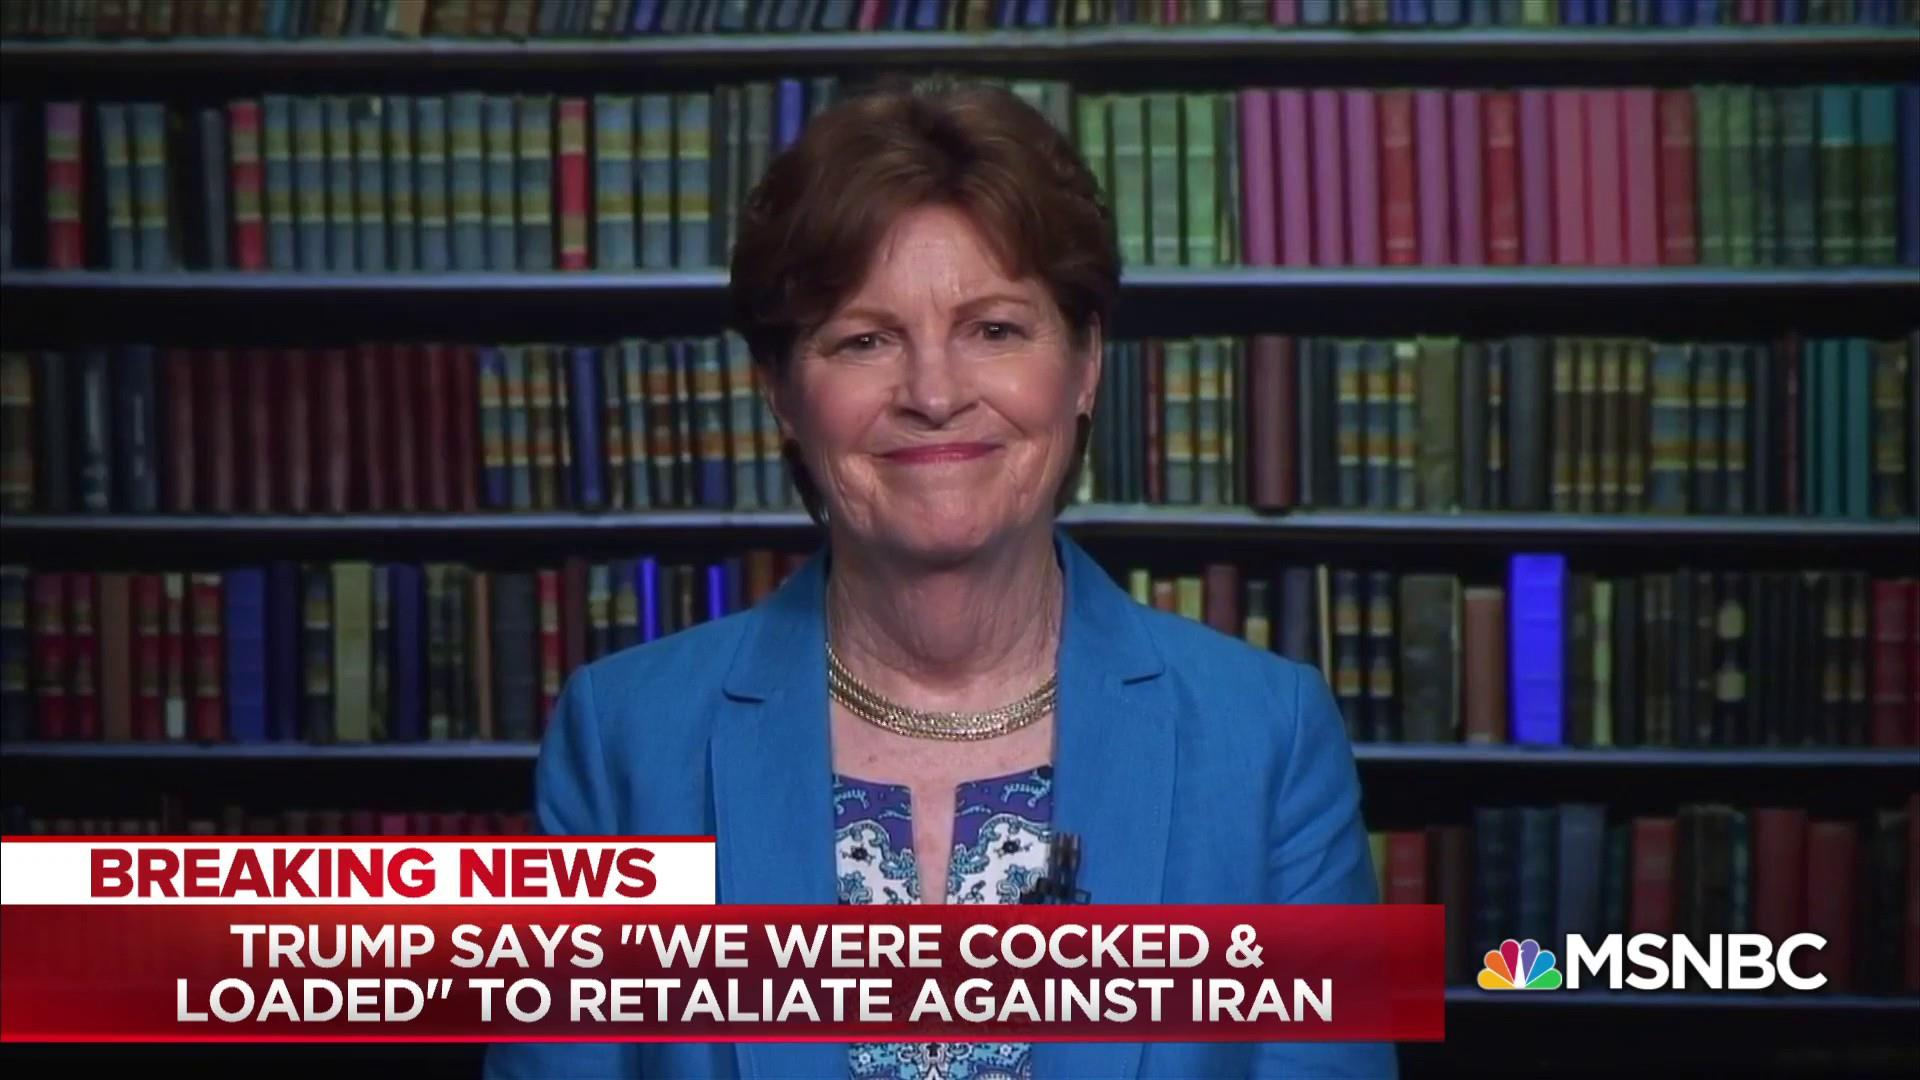 Sen. Shaheen: Iran nuclear deal progress 'seems to be reversing'